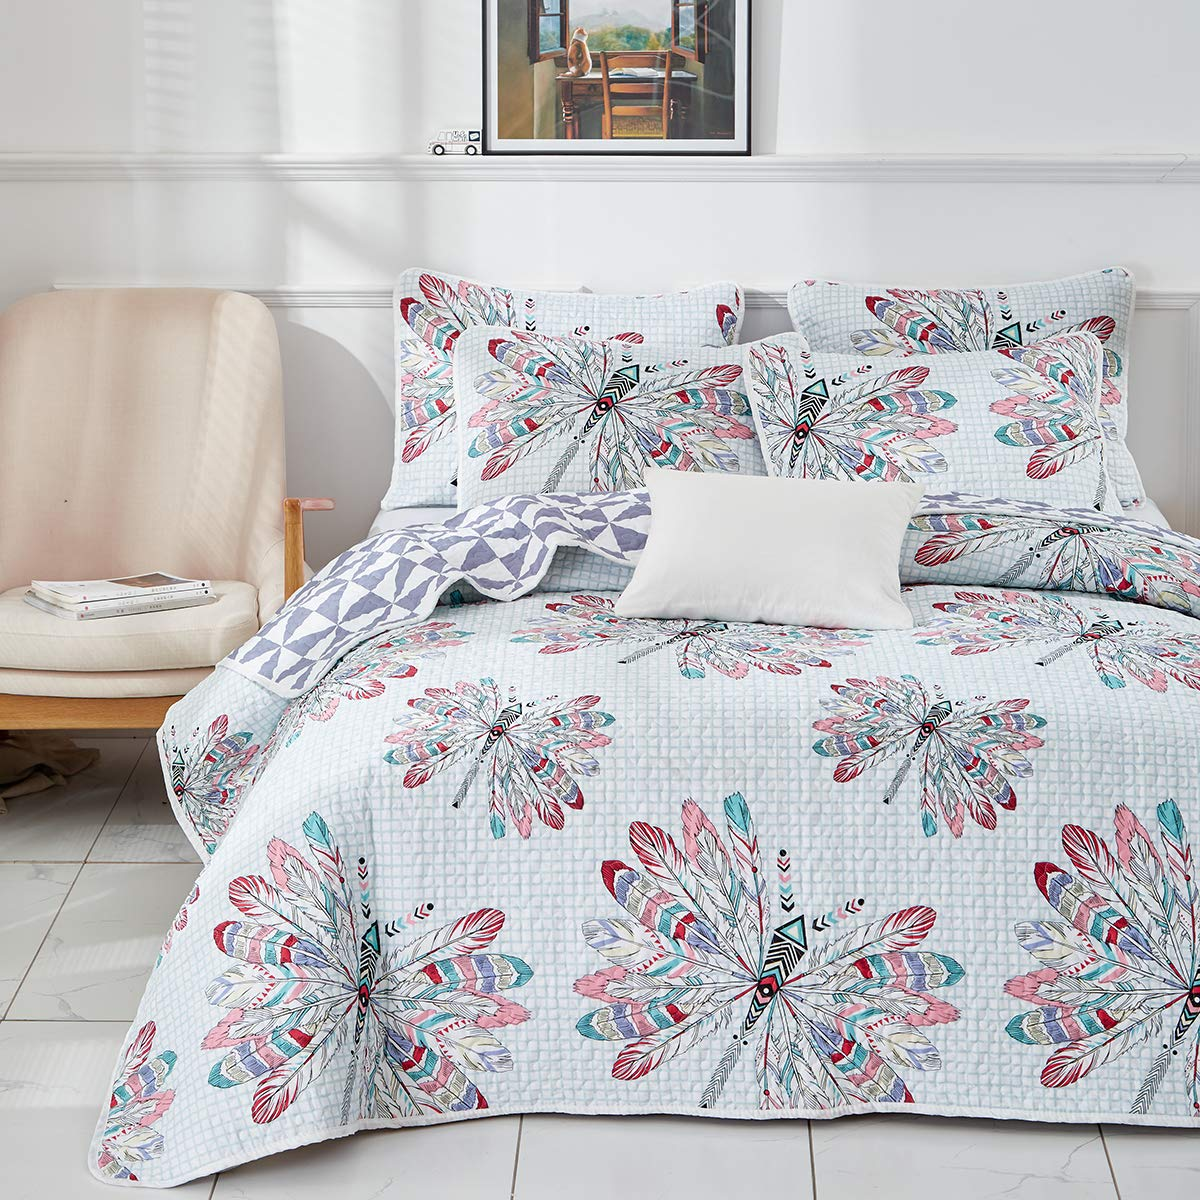 1 Quilt + 1 Shams Uozzi Bedding 2 Piece Reversible Navy Quilt Set Twin Size 68x86 with Cars Bus Traffic Style Soft Microfiber Lightweight Coverlet Summer Bed Cover Set Blanket for Kids